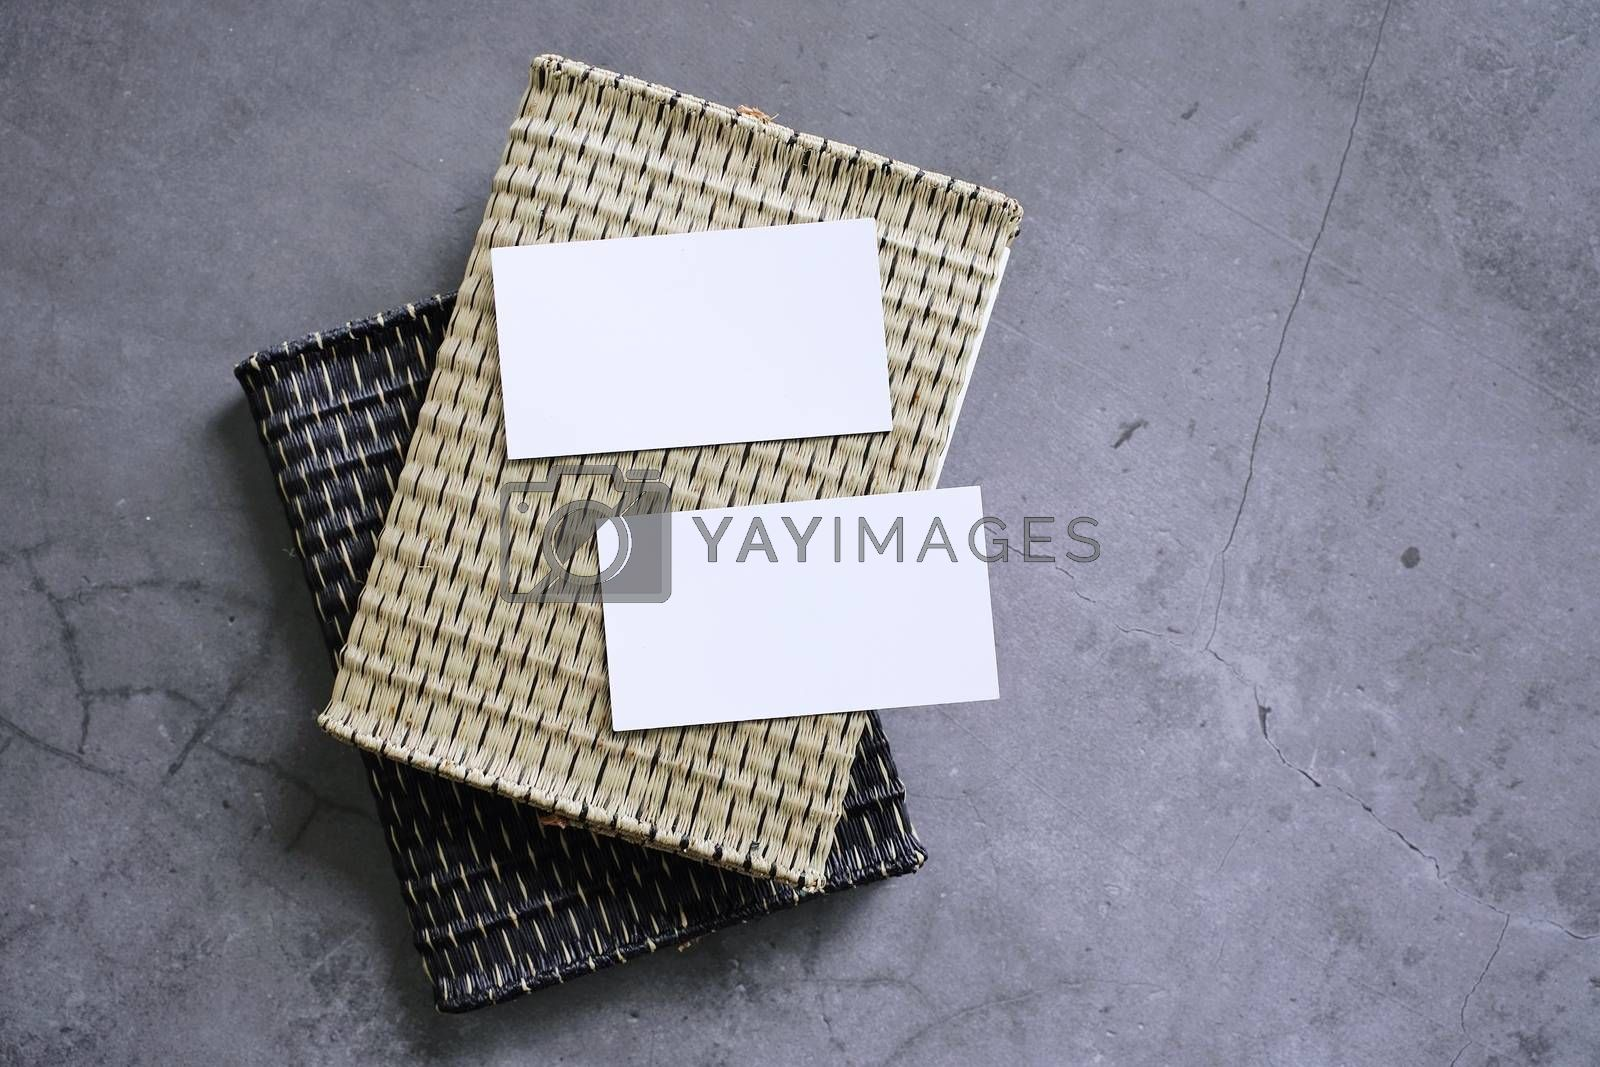 Flat lay branding identity business name card on wicker book cover in modern style on dark stone background, minimal concept for design